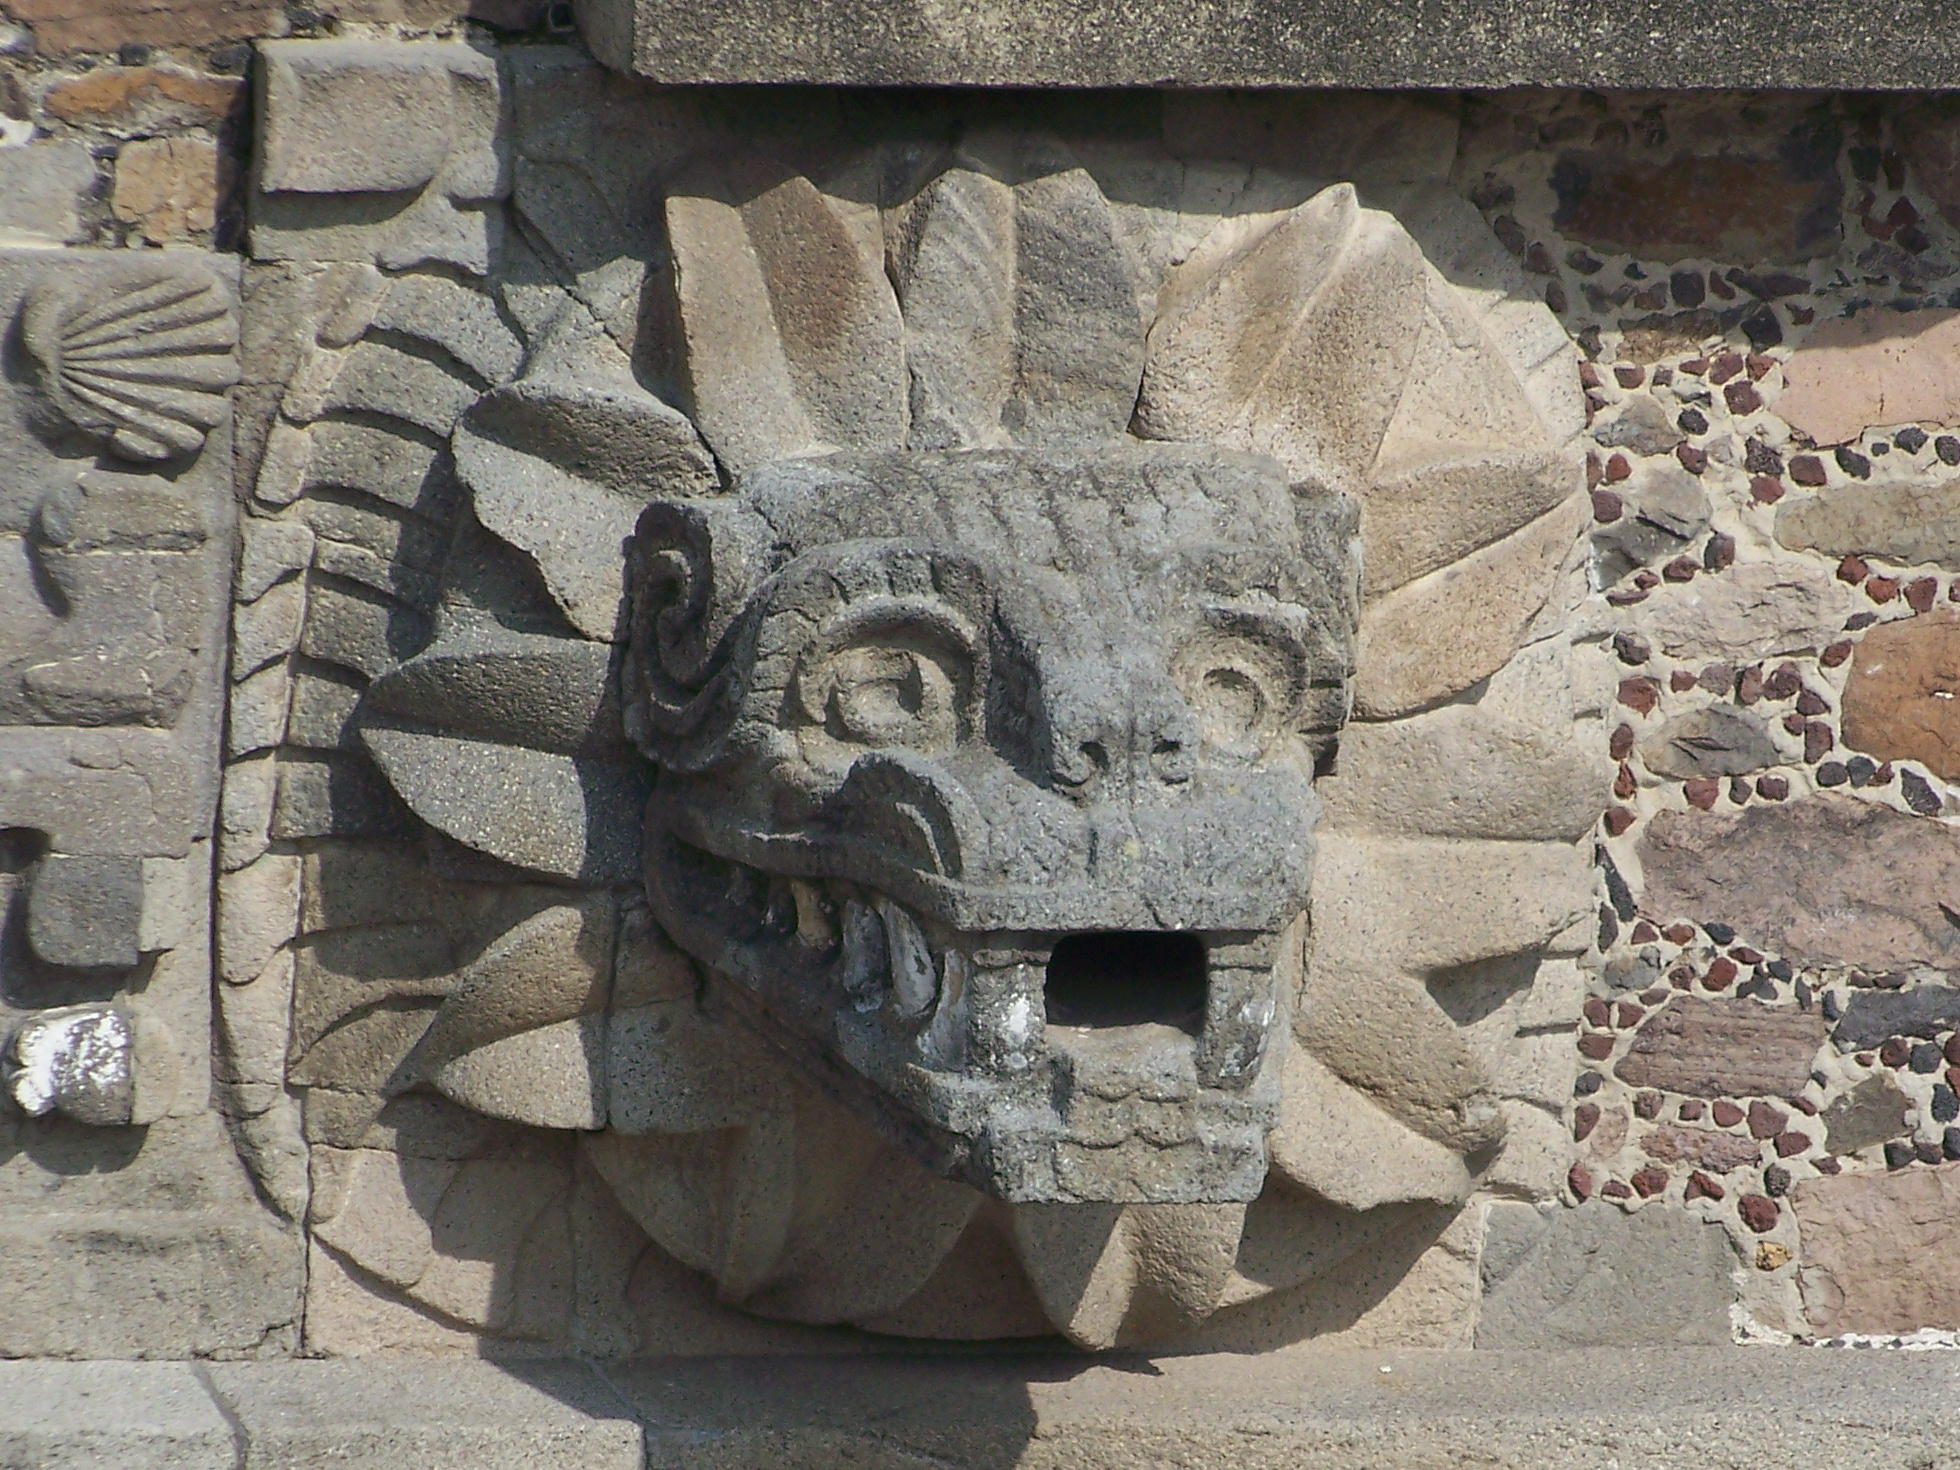 an analysis of the mural of the feathered serpent and flowering trees of the aztec culture